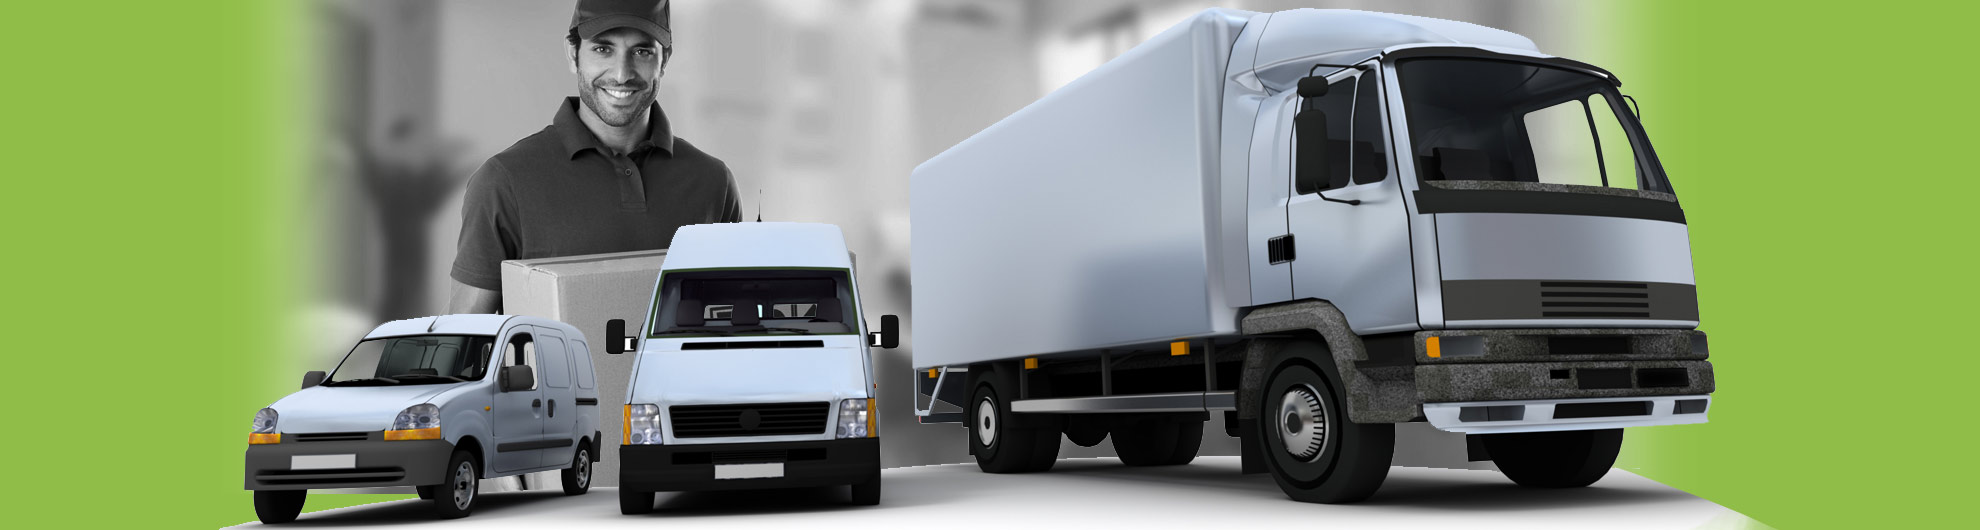 Oleiros  International Movers - Shipping Companies